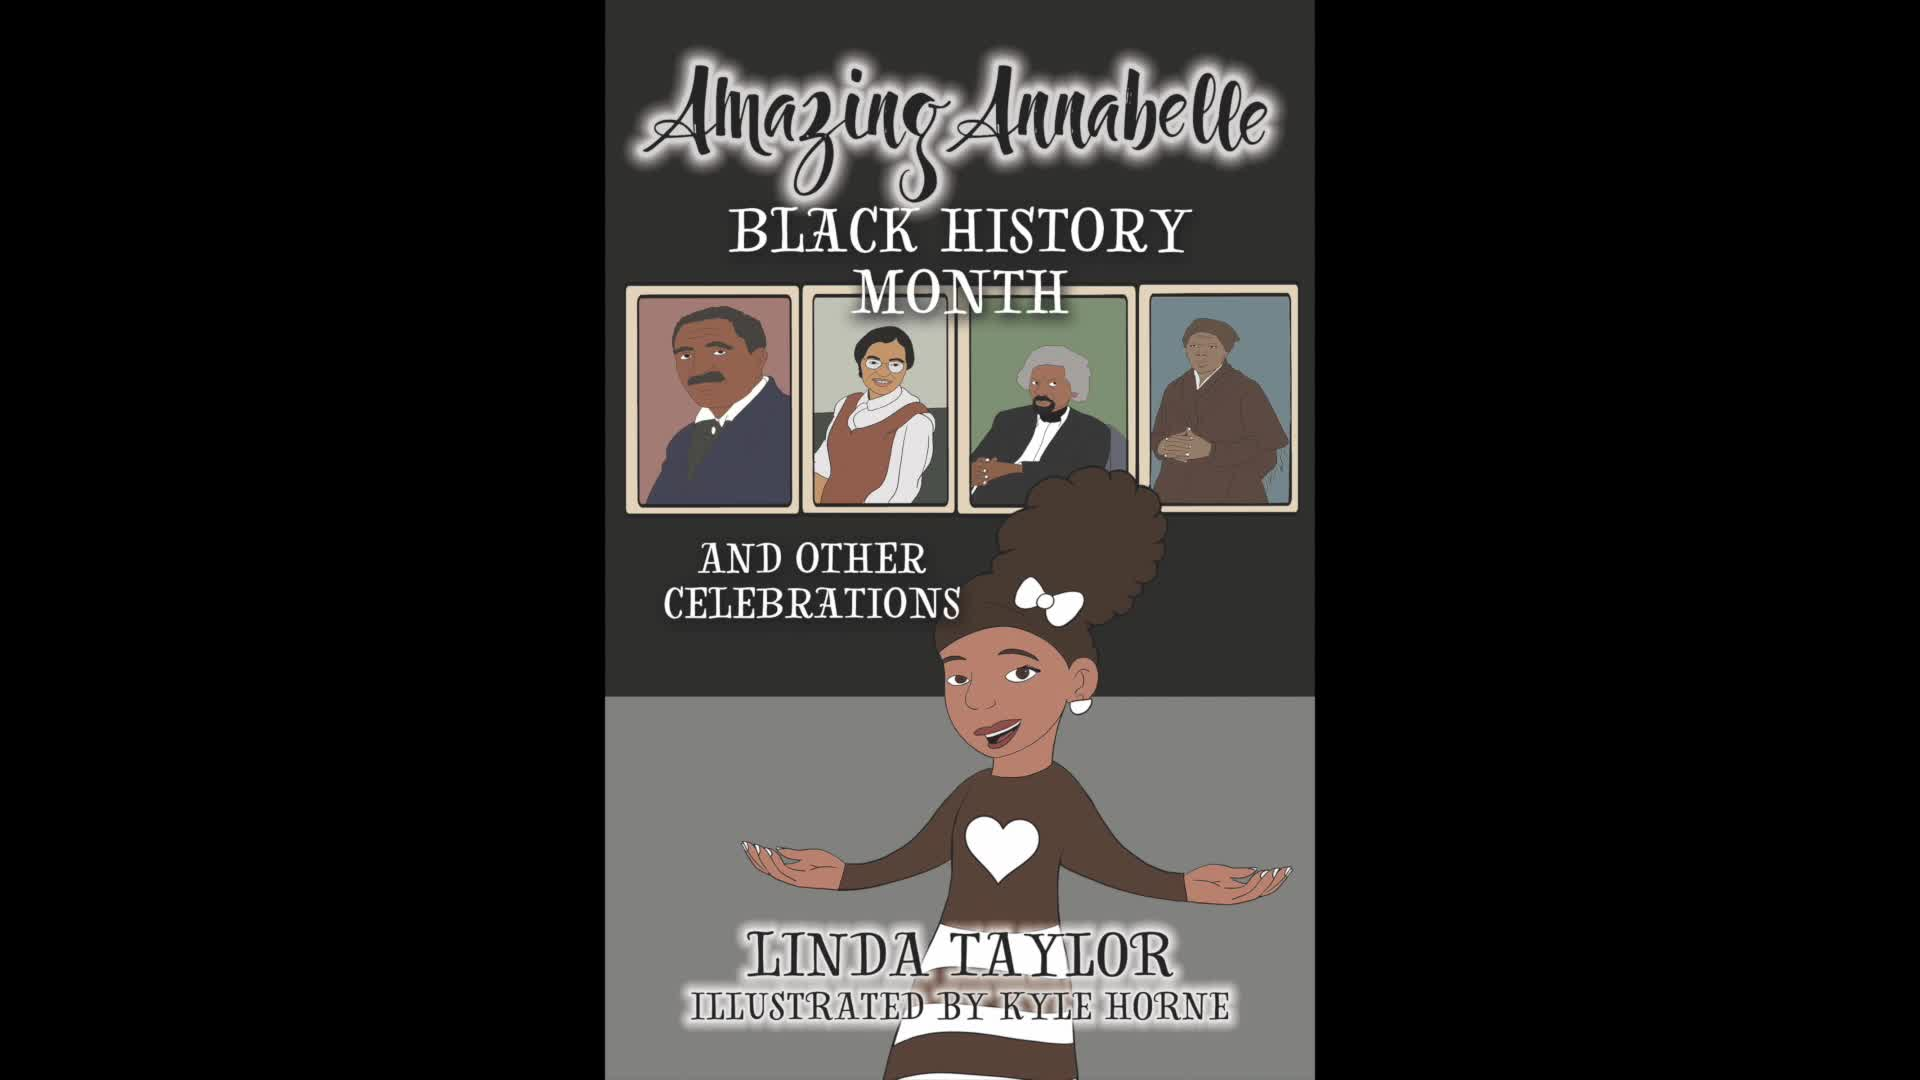 Amazing Annabelle Black History Month Chapter 3